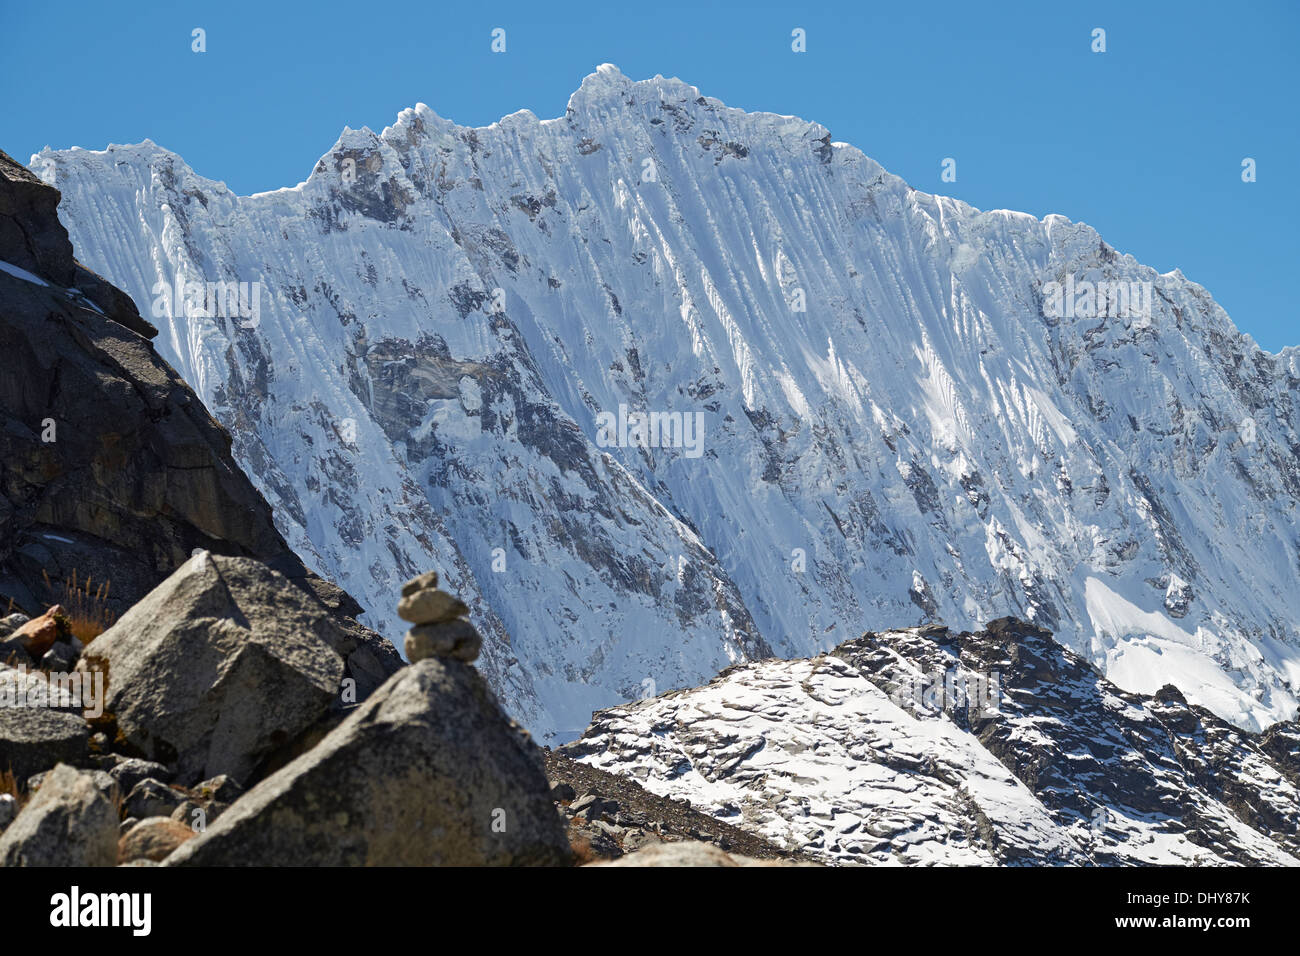 Ocshapalca Summit (5888m) in the Peruvian Andes. - Stock Image